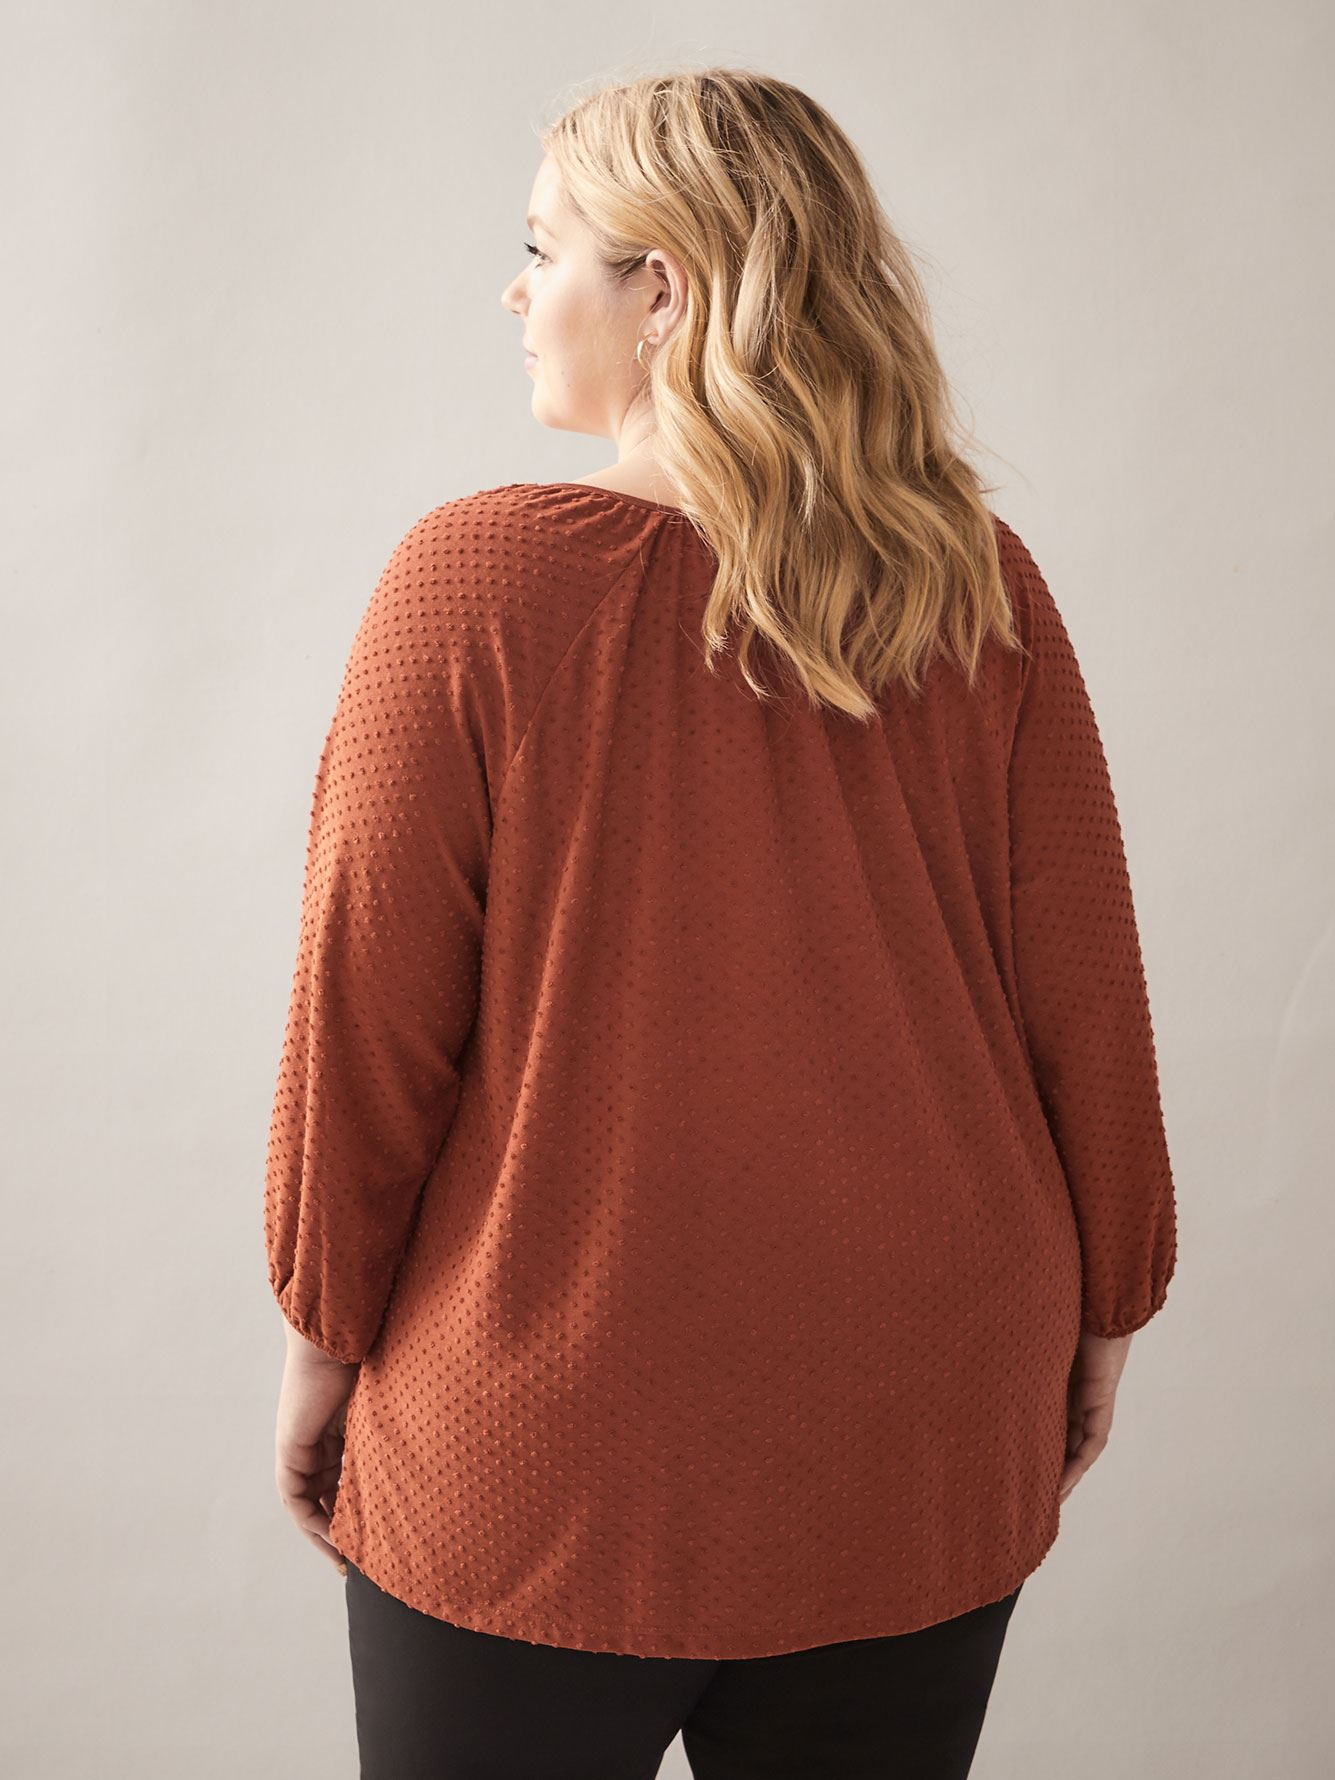 Blouse avec pampilles - In Every Story